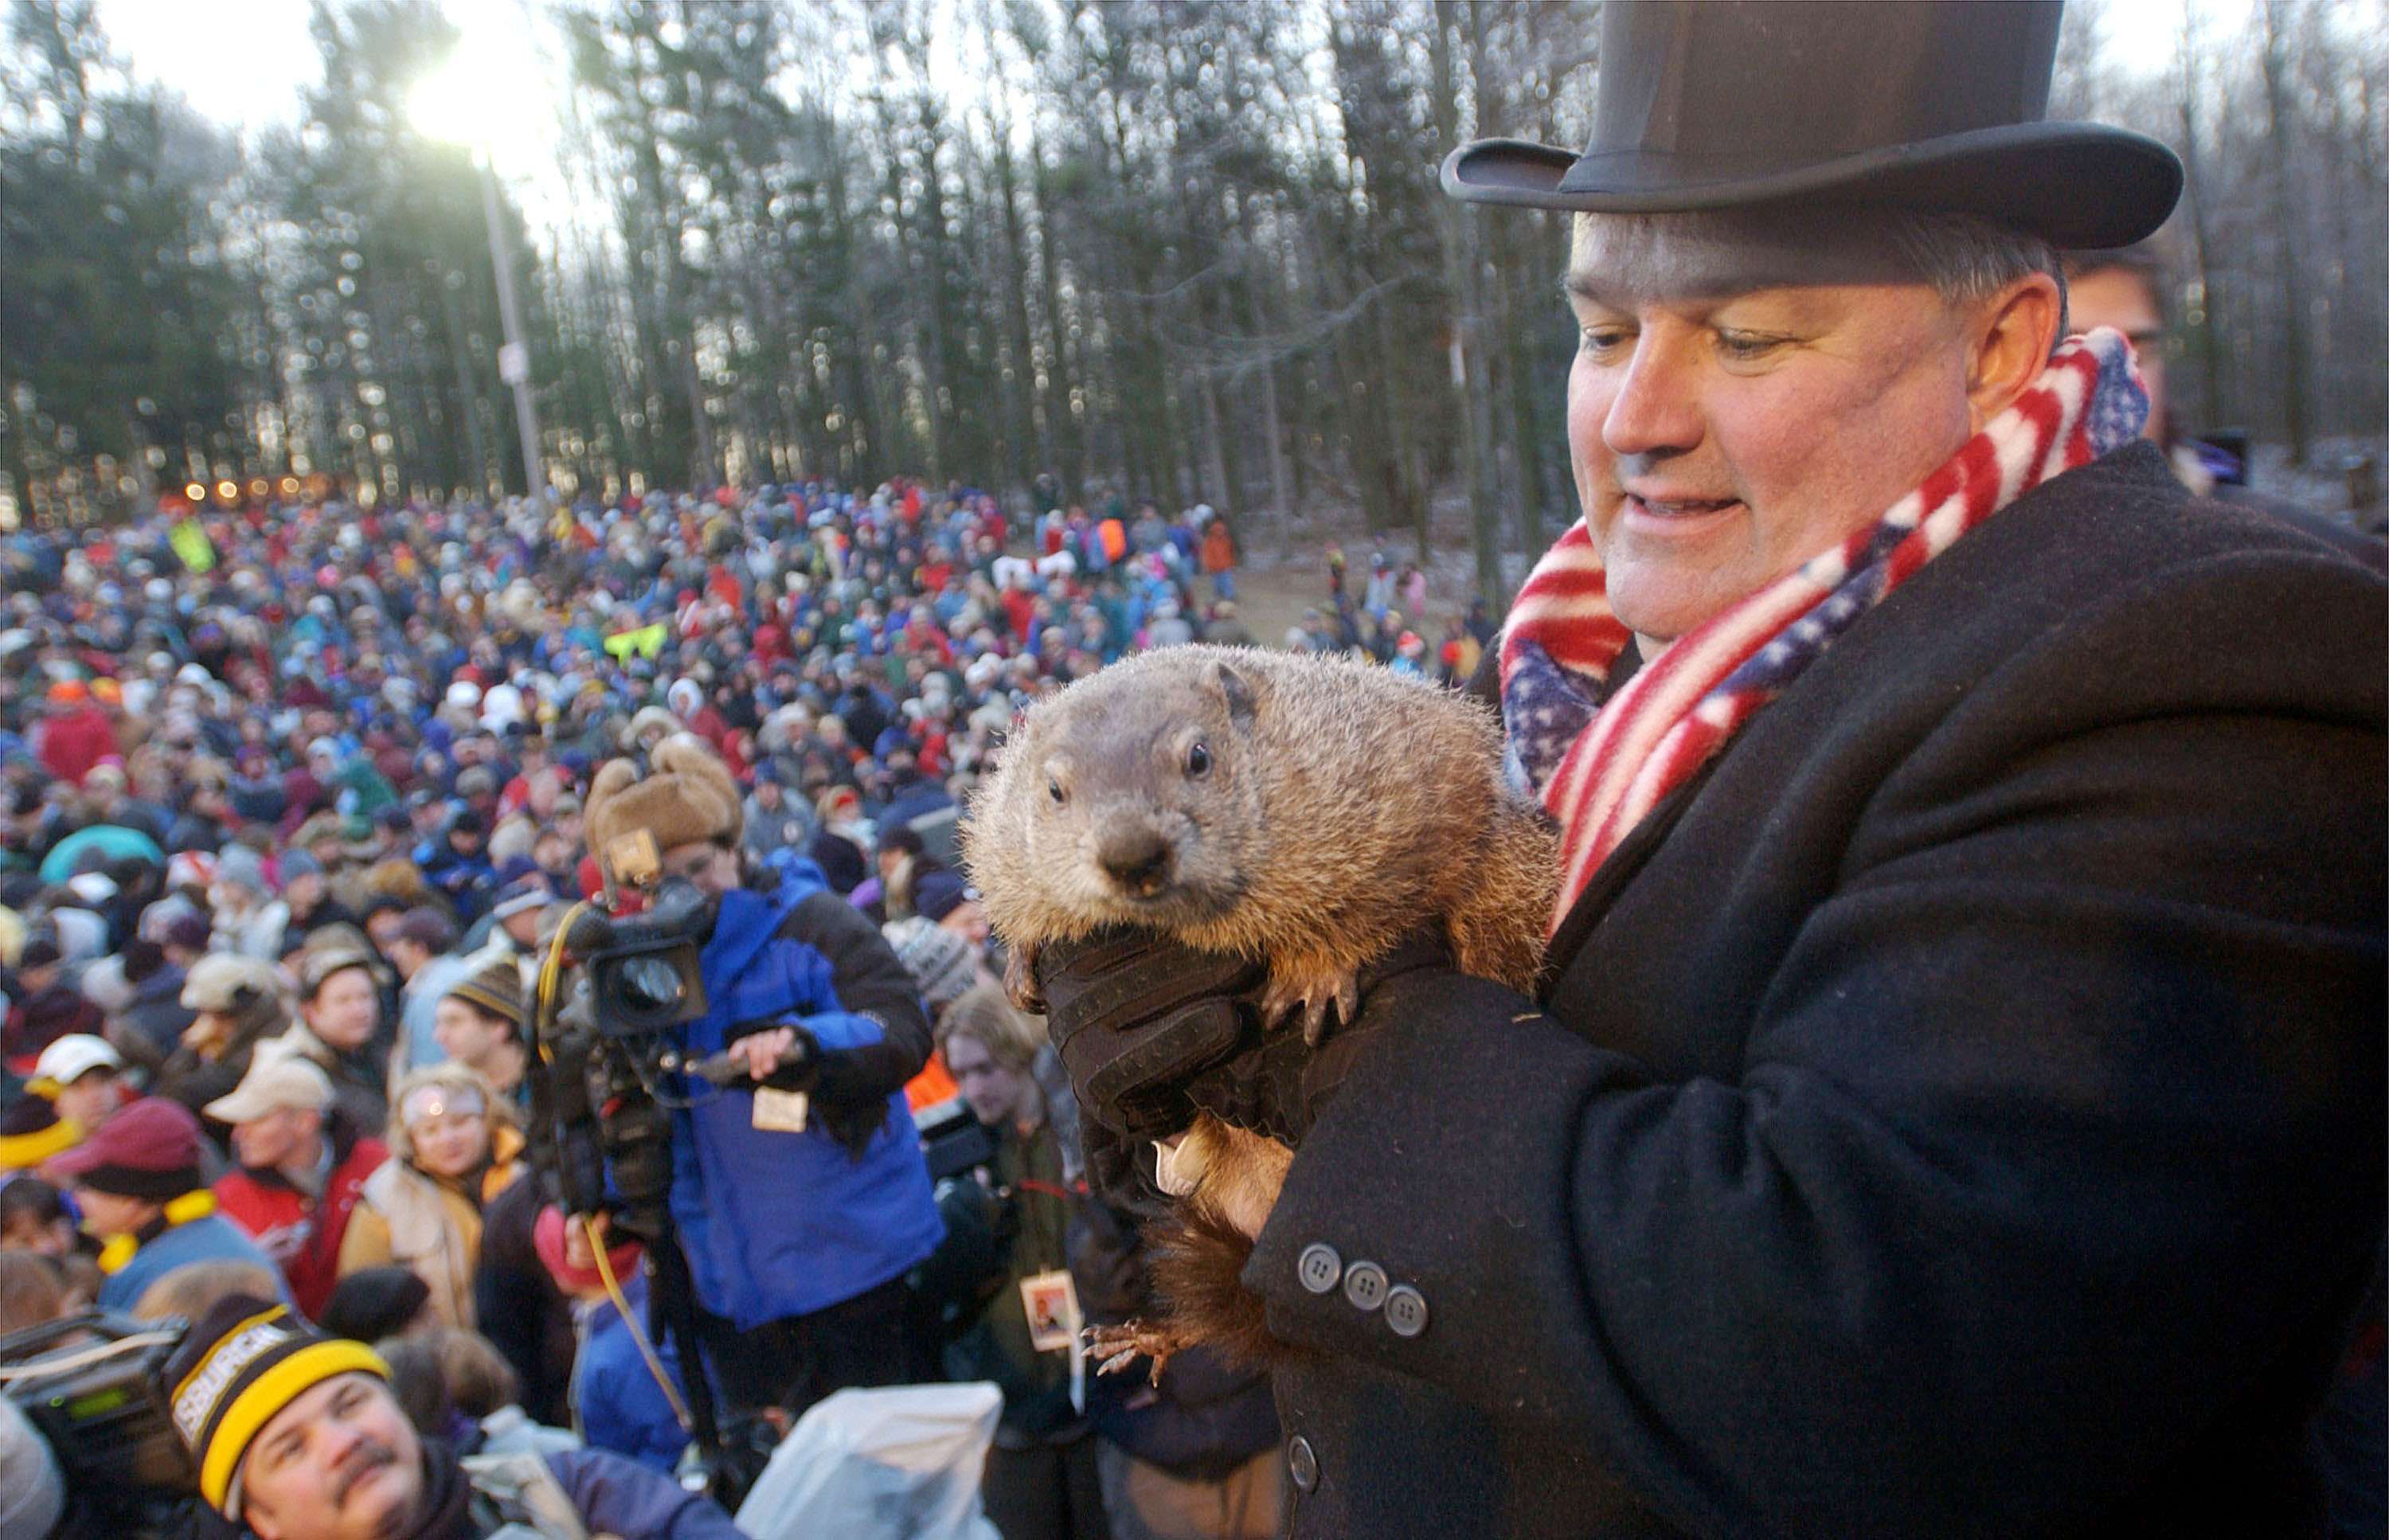 Punxsutawney Phil's prediction: 6 more weeks of winter